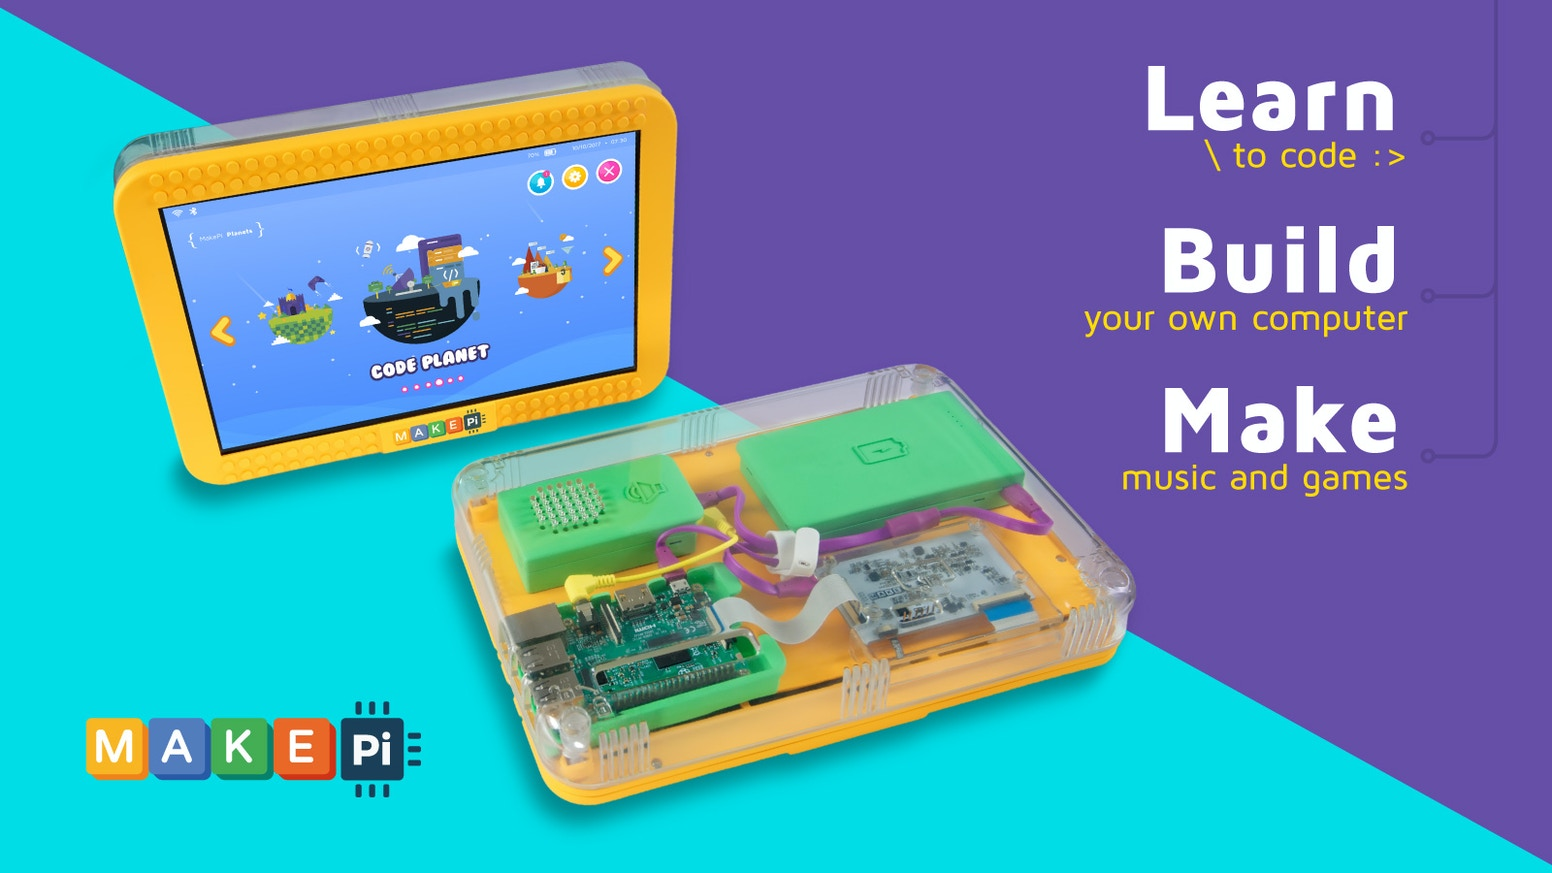 Electronics Projects For Dummies A Sneak Peak Makepad Diy Tablet That Teaches Kids How To Code By Csar Martins Kickstarter